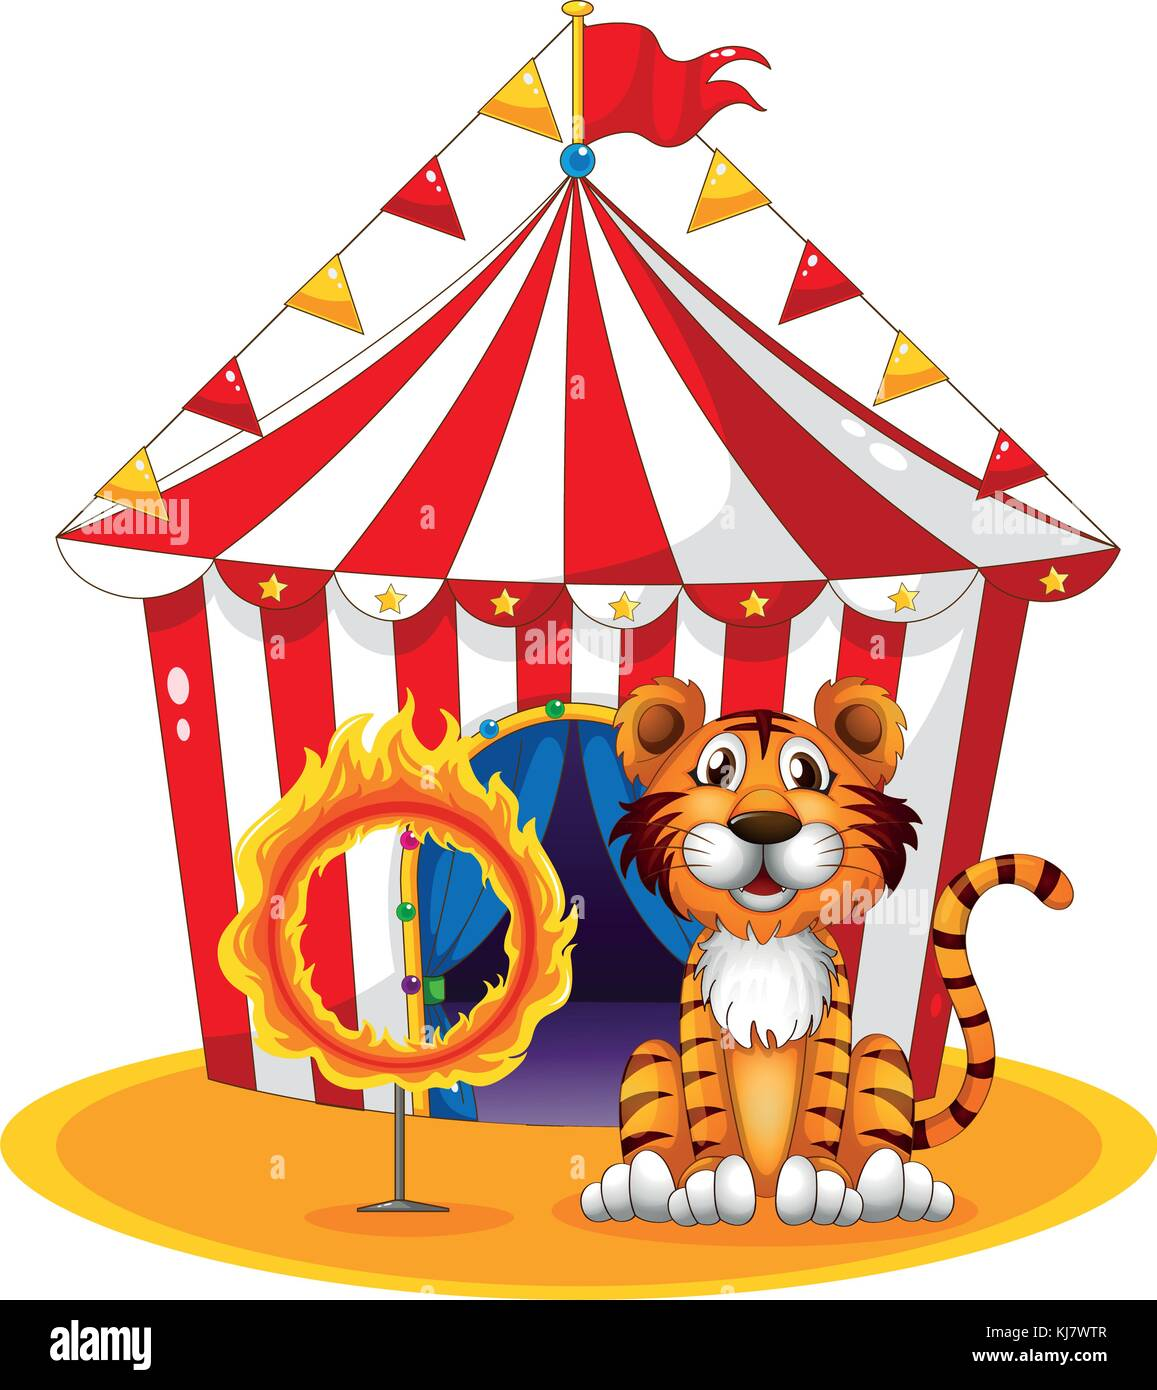 Illustration of a circus tent at the back of the tiger and the ring of fire on a white background - Stock Image